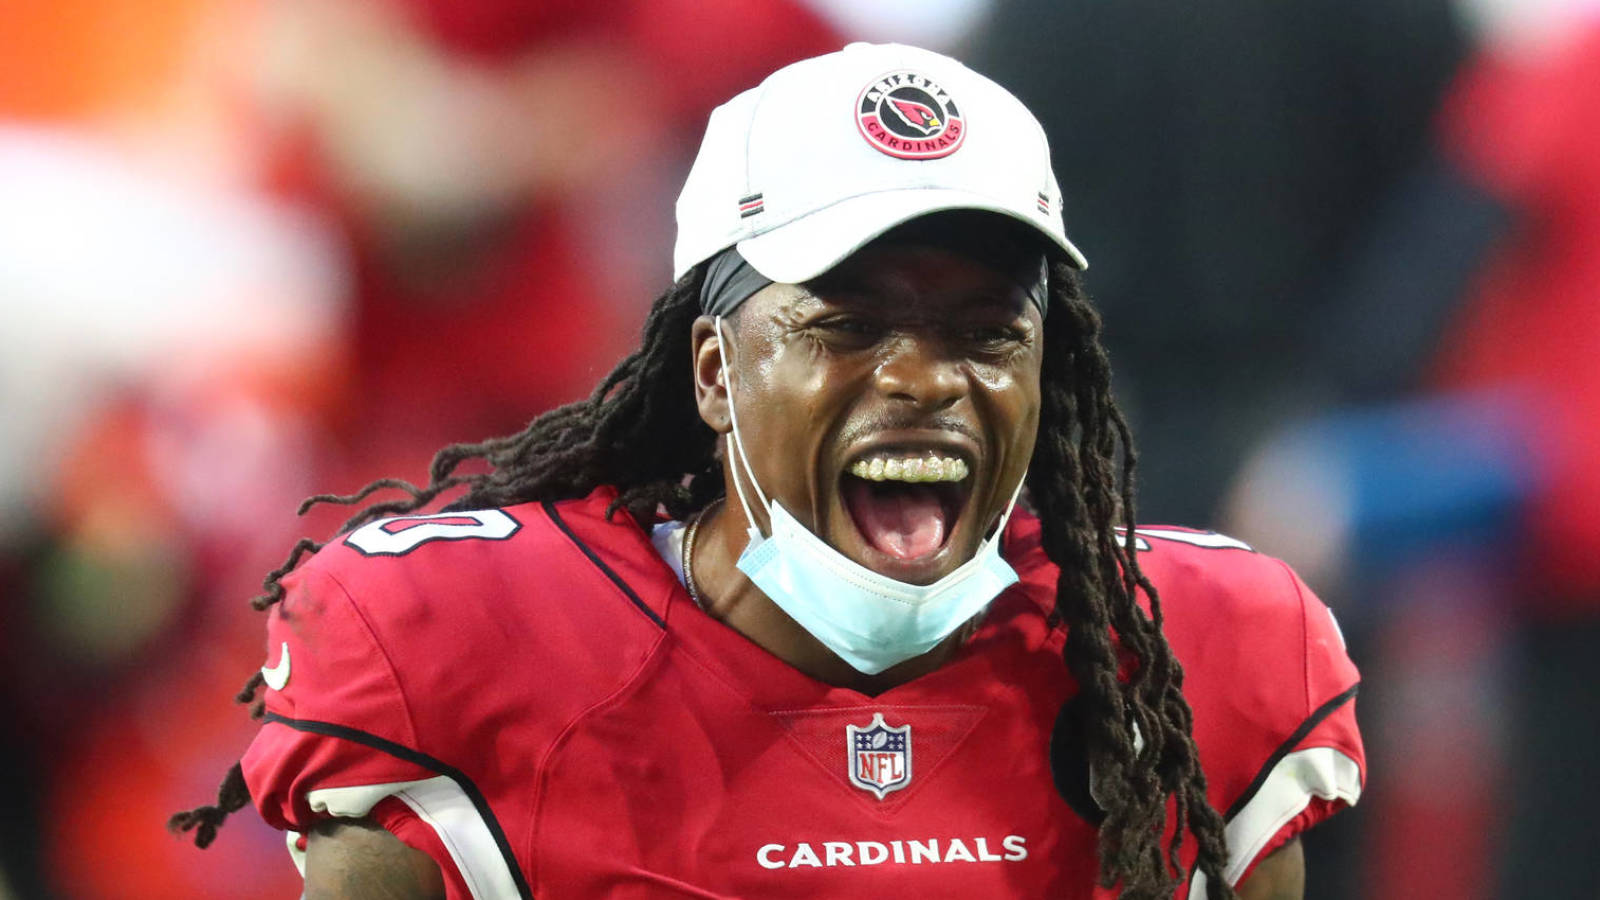 Dre Kirkpatrick gets taunting foul for fight with D.K. Metcalf ...